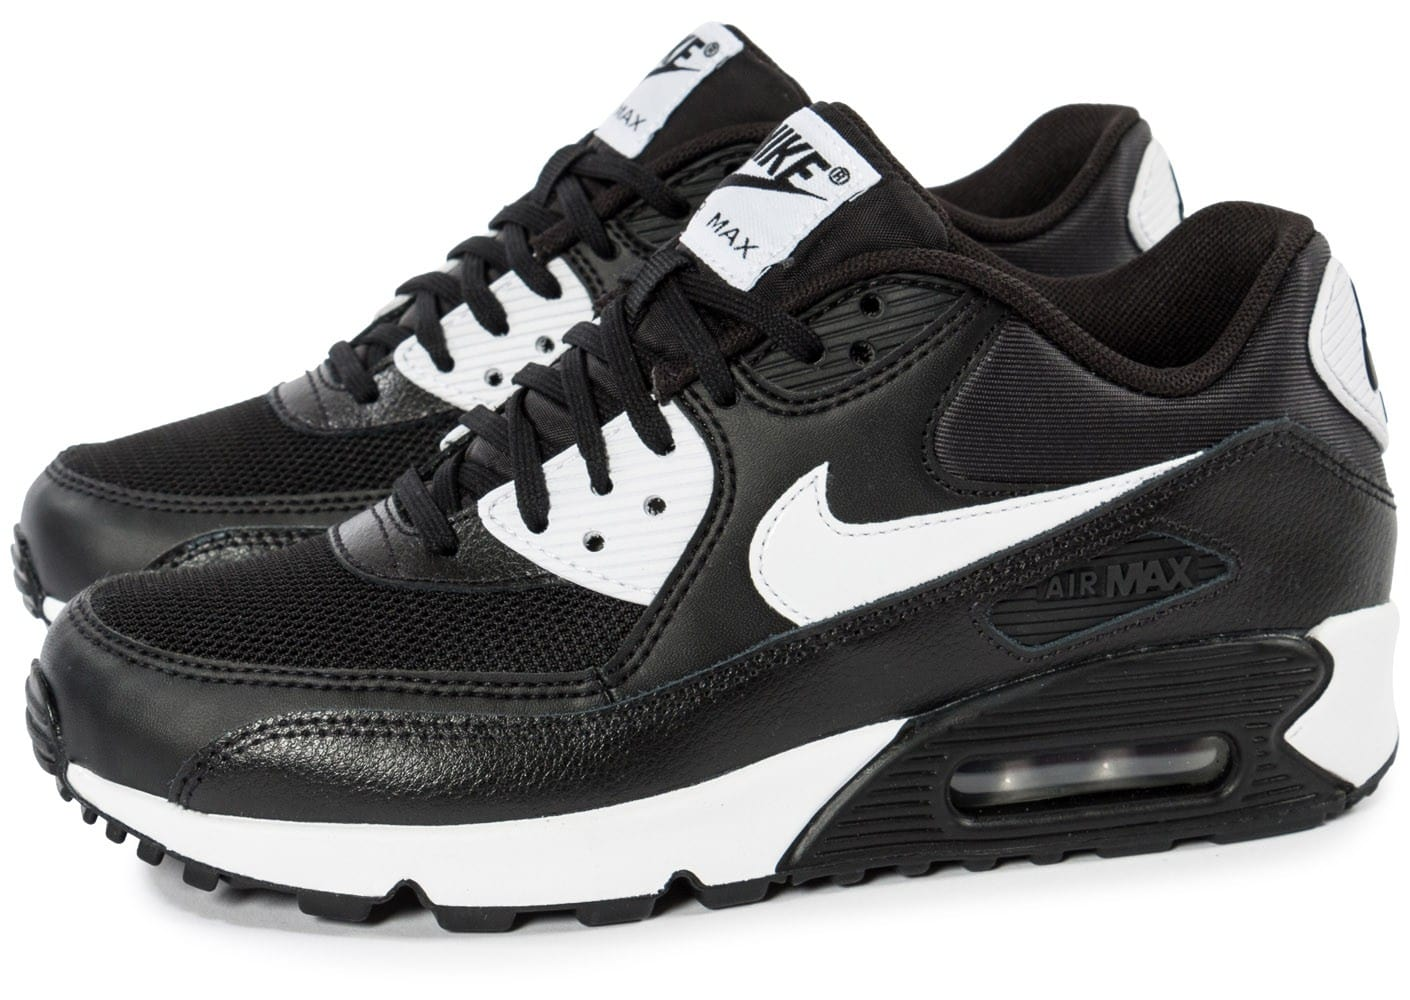 nike air max 90 essential noire et blanche chaussures baskets femme chausport. Black Bedroom Furniture Sets. Home Design Ideas